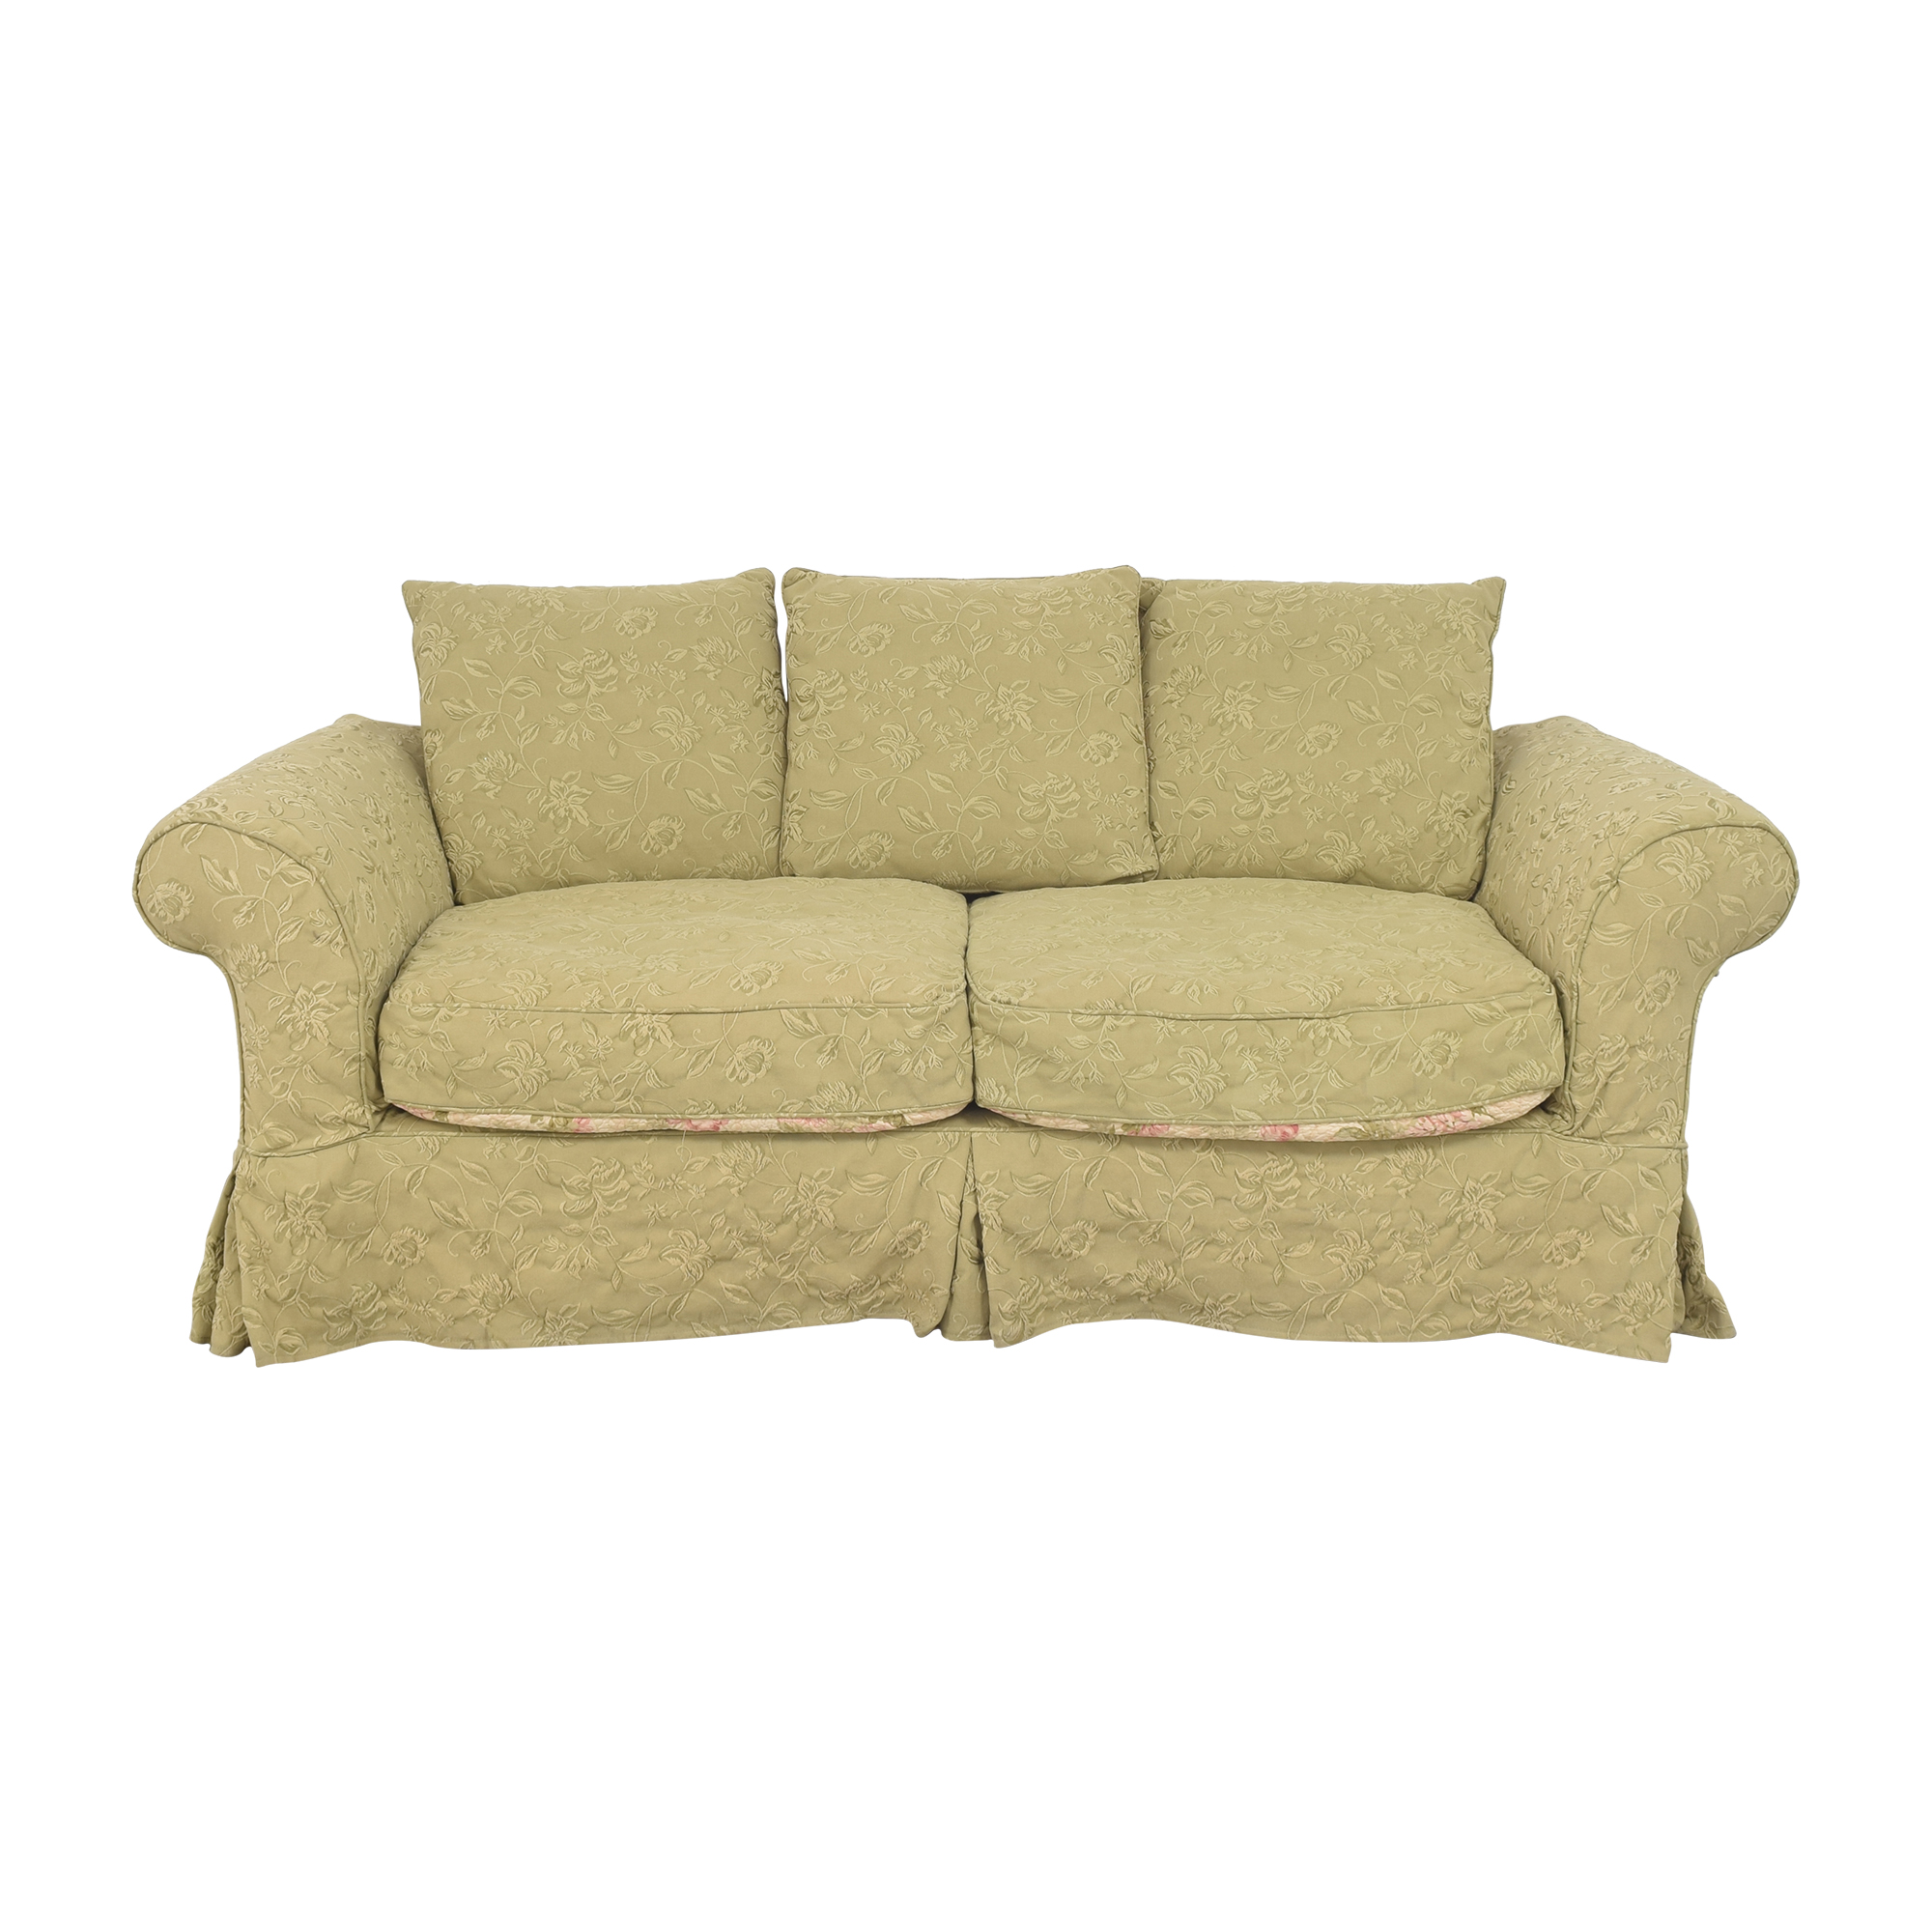 Domain Domain Floral Slipcovered Sofa dimensions